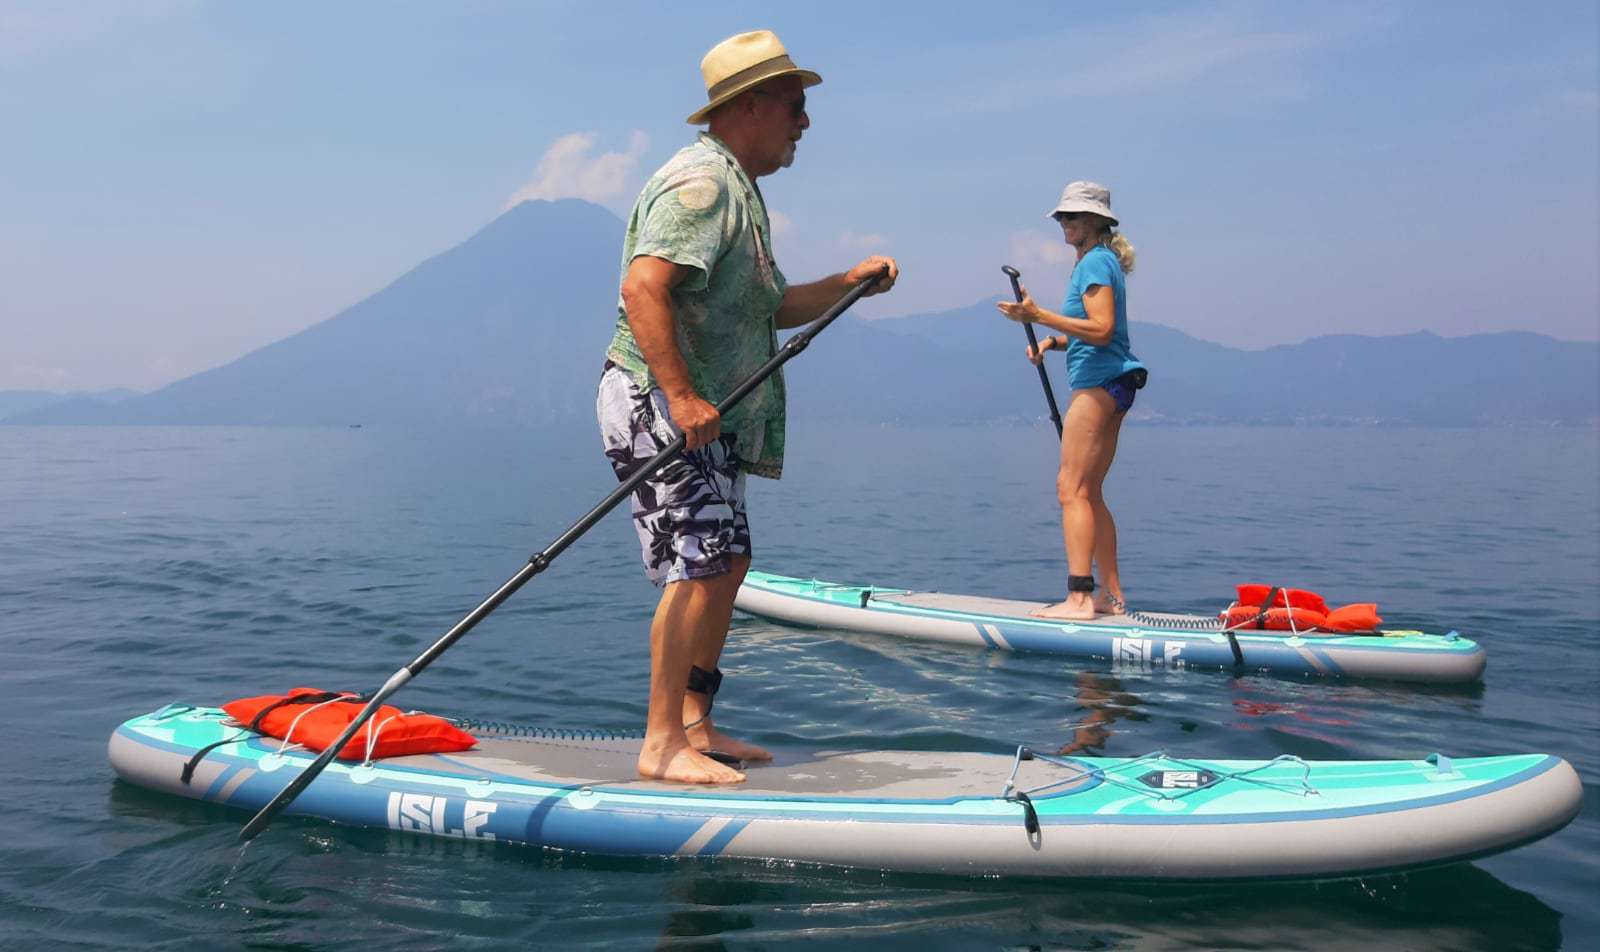 Mark and Traci paddleboarding for the first time.